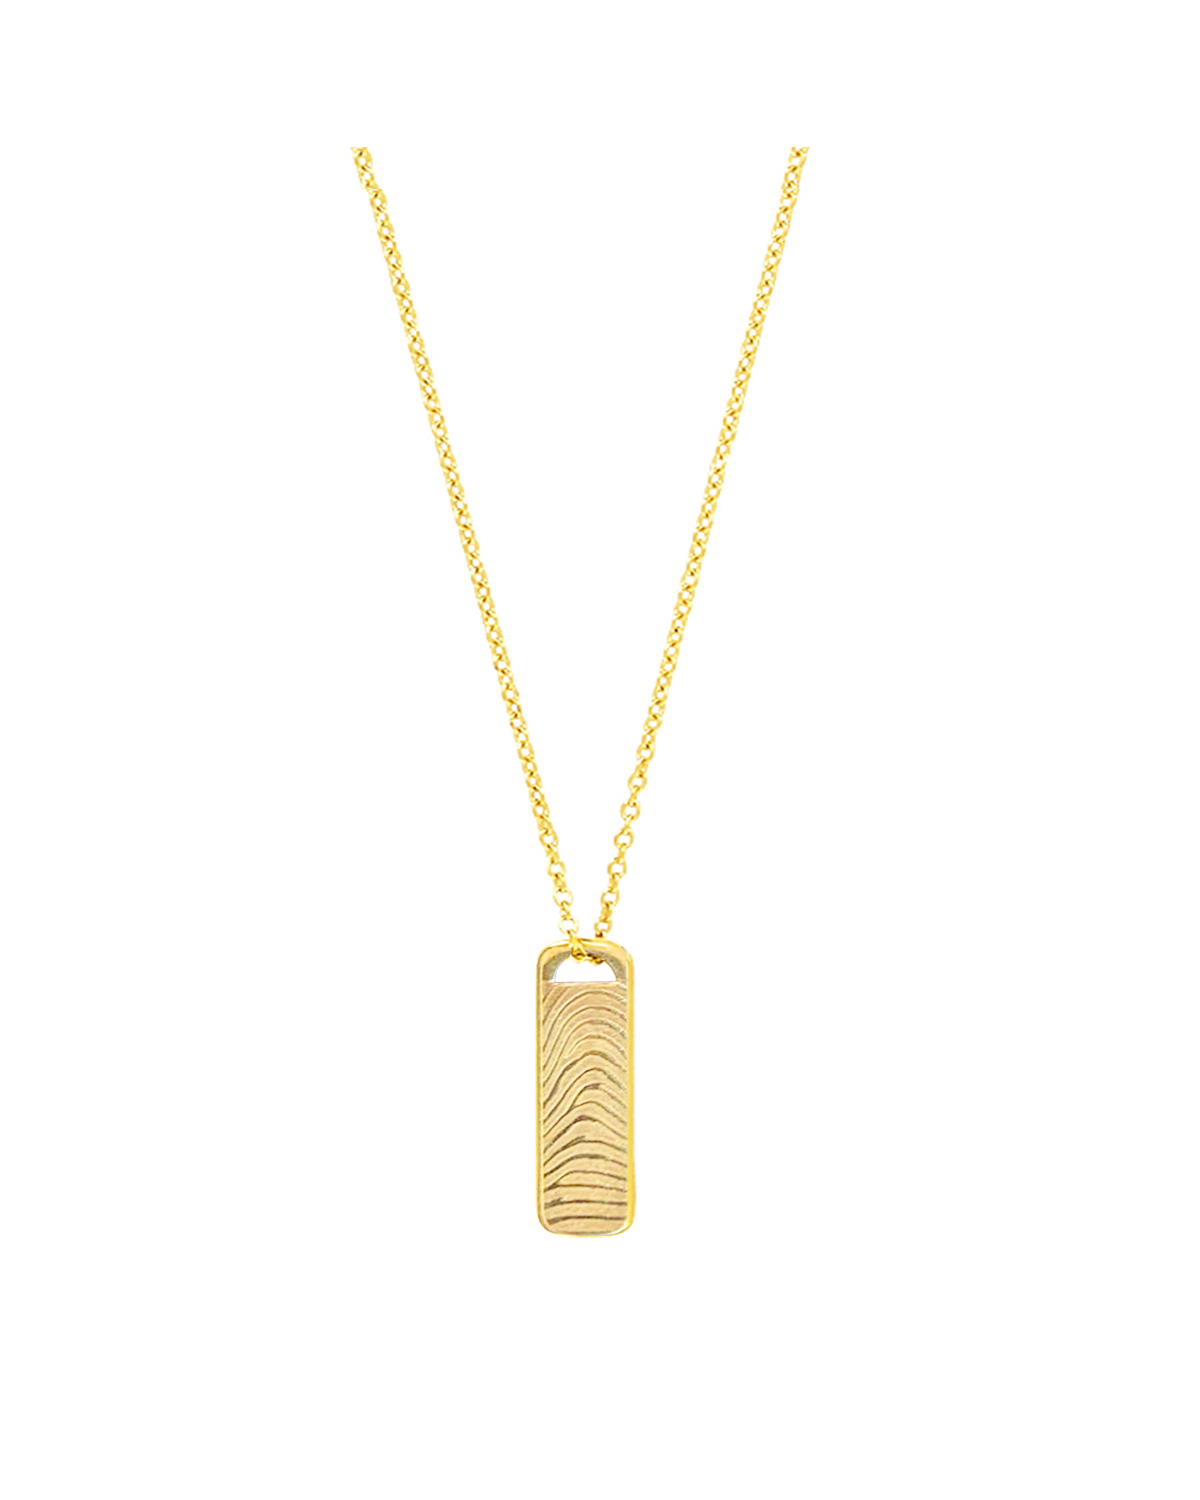 18K Plate Necklace, Gold